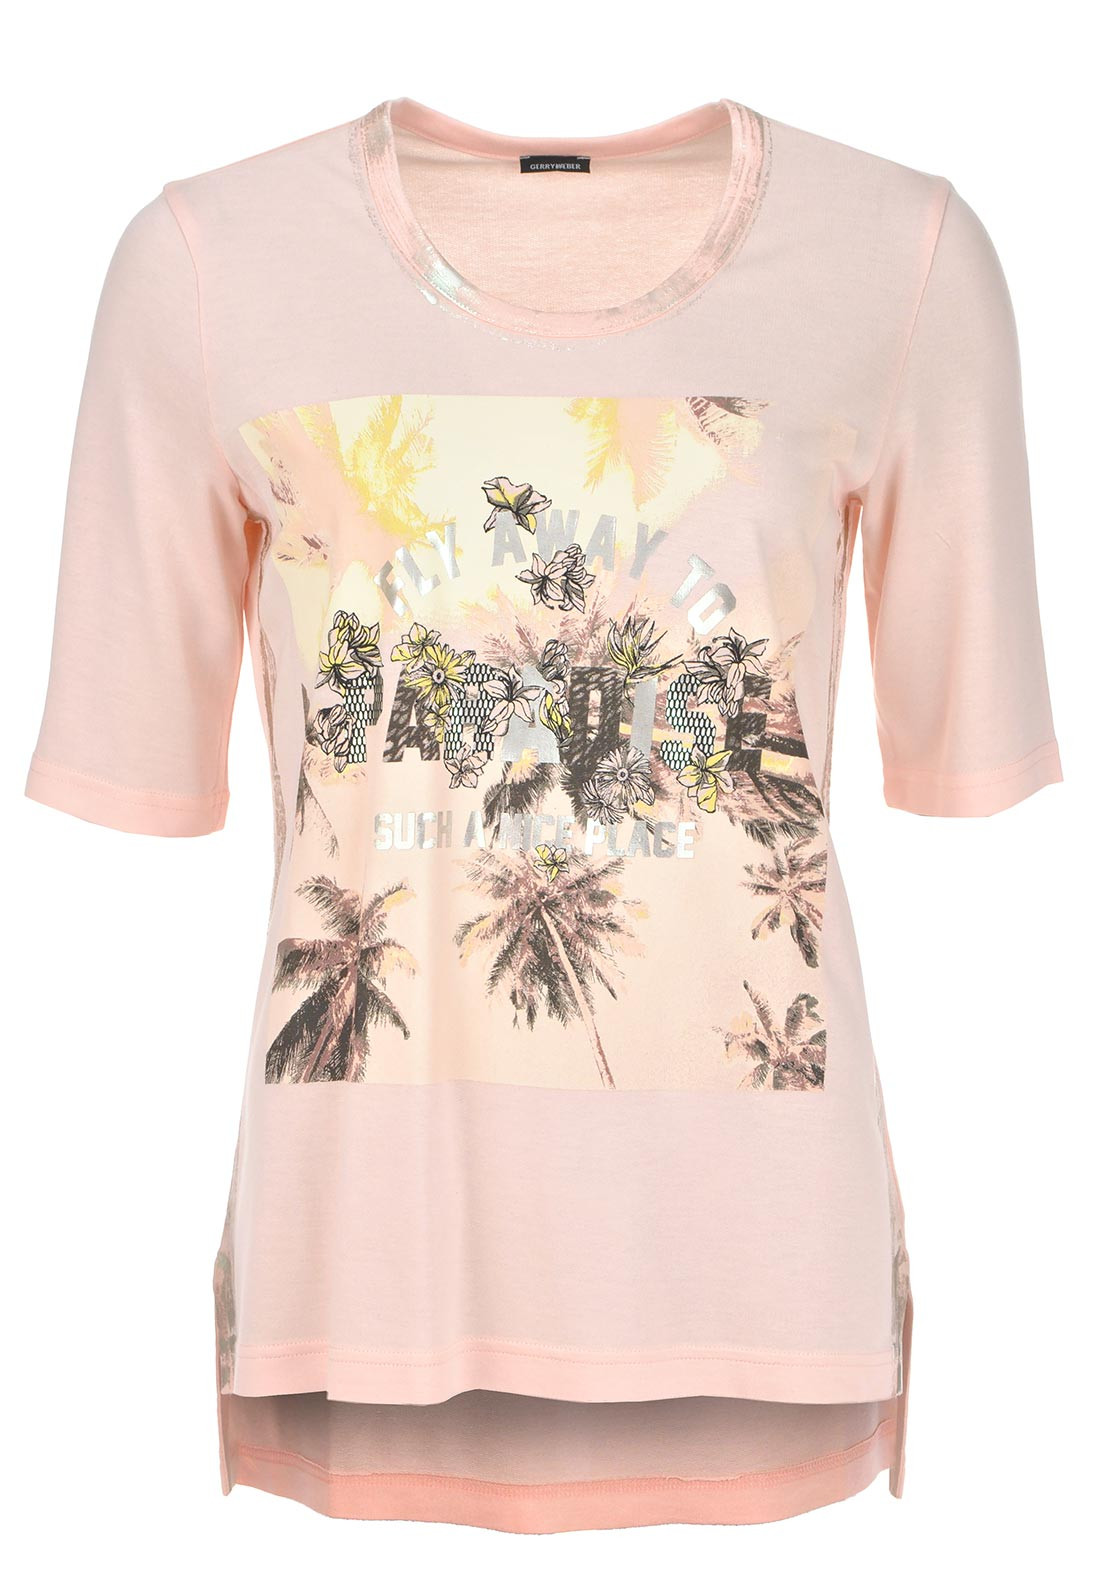 Gerry Weber Tropical Graphic Print Top, Pink